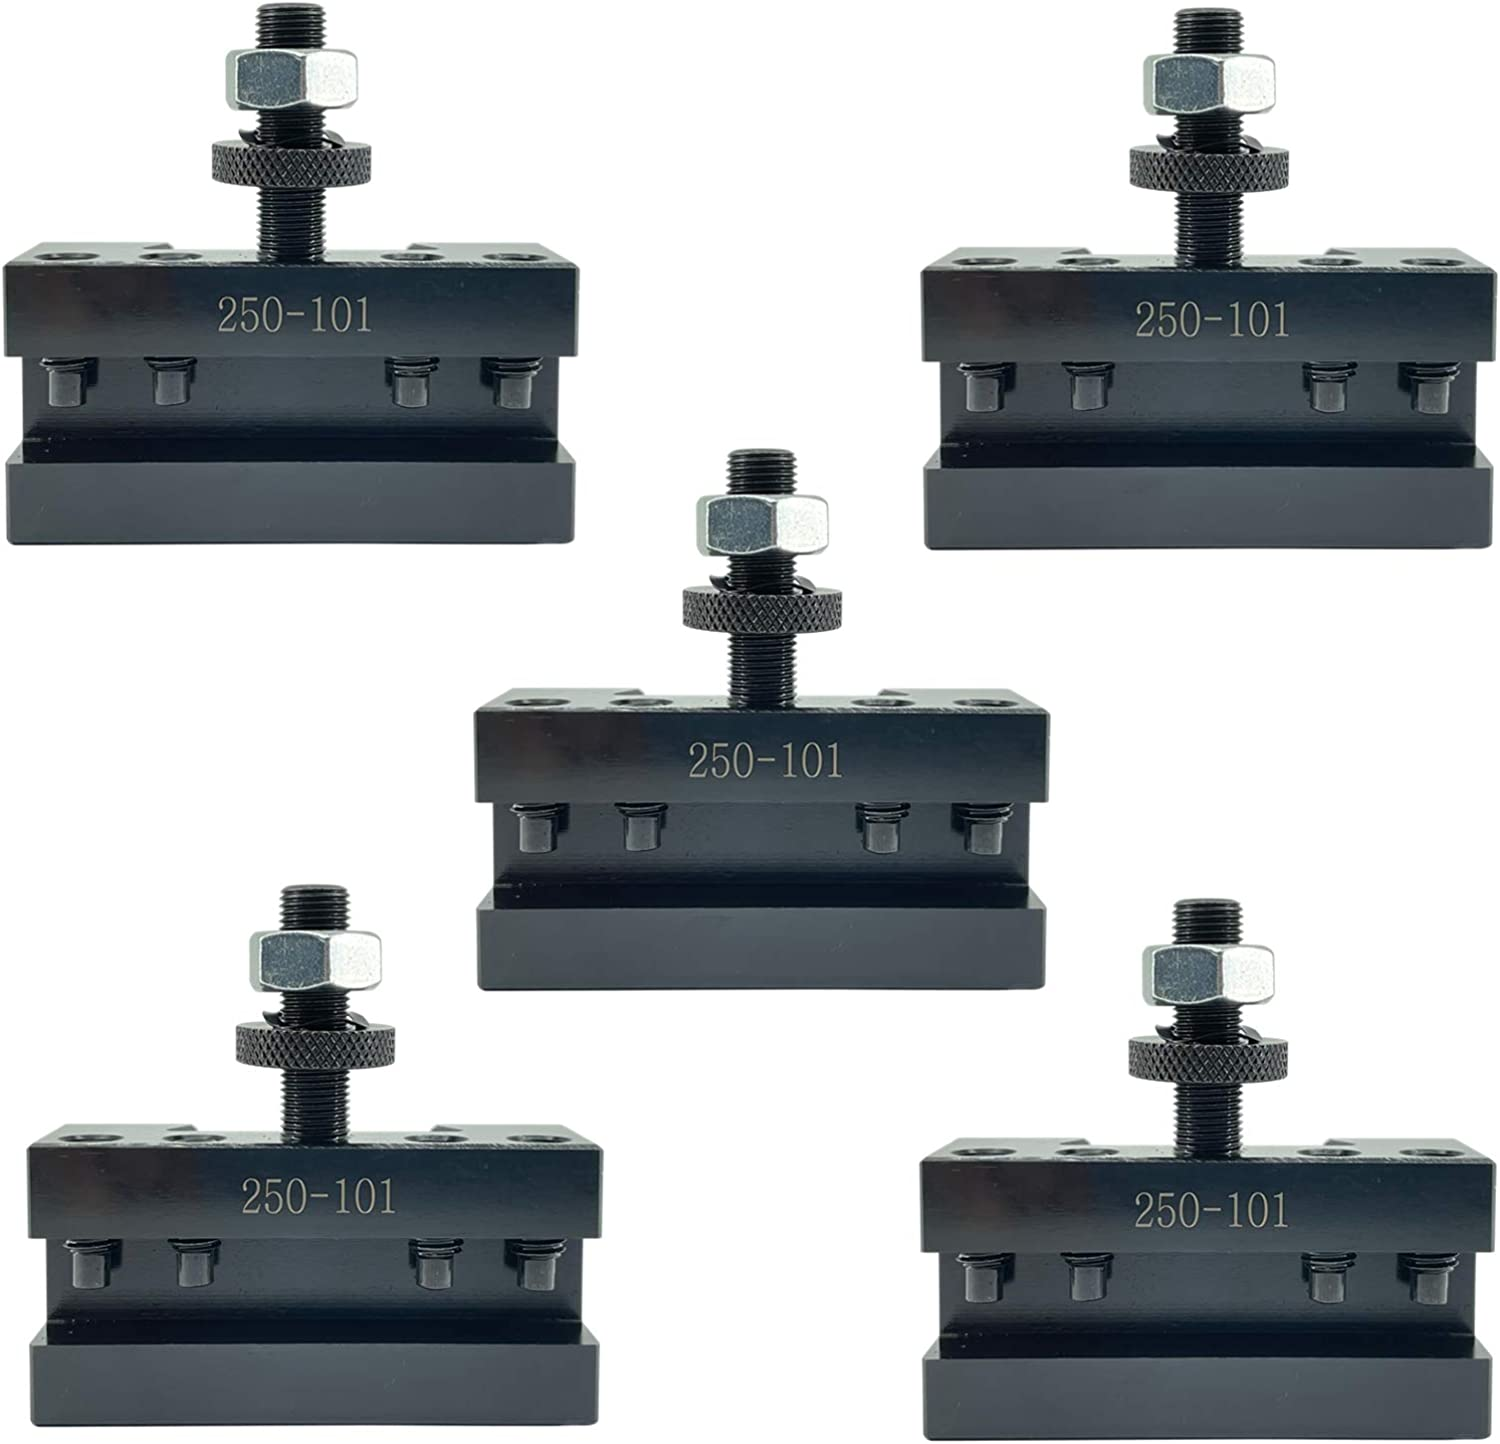 ALTBET 5pcs Over item handling 250-101 AXA #1 Holder Quick Change Facing We OFFer at cheap prices Turning